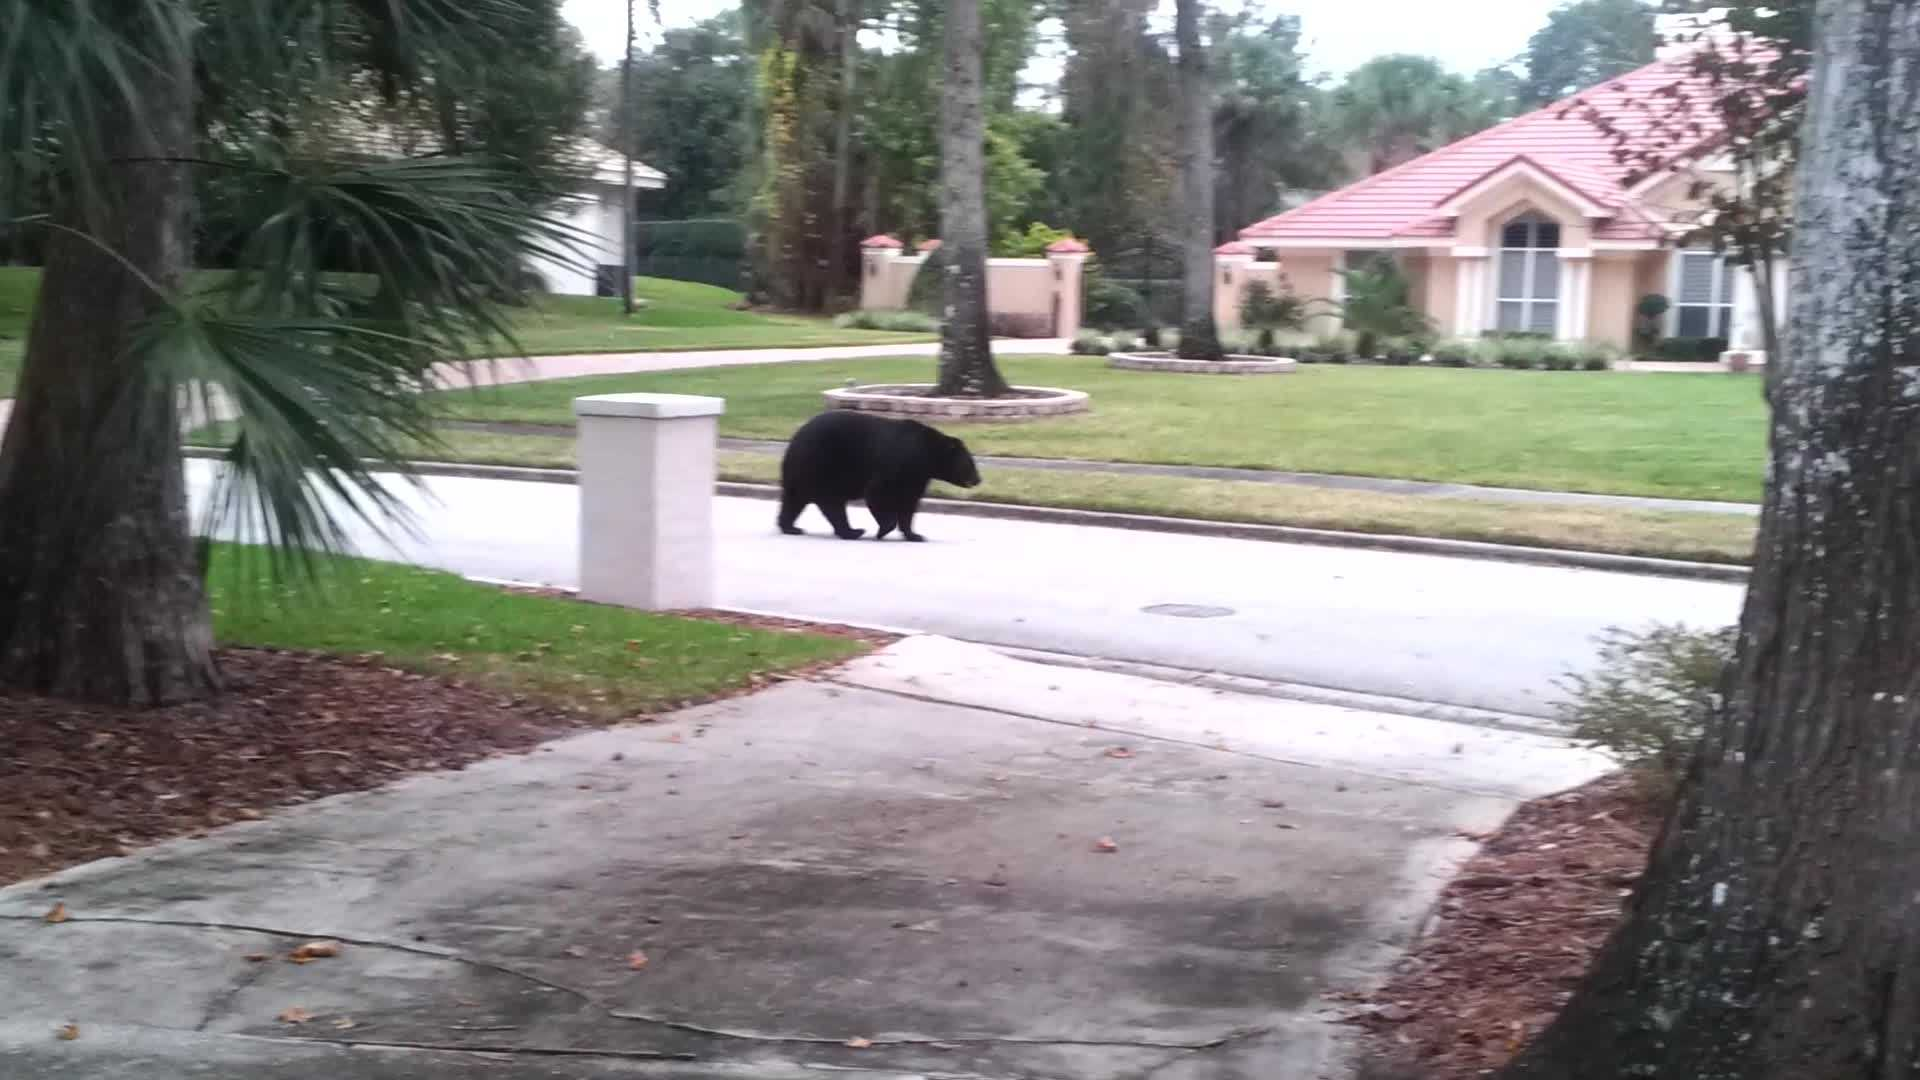 A large black bear was spotted in a Longwood neighborhood on Monday evening.